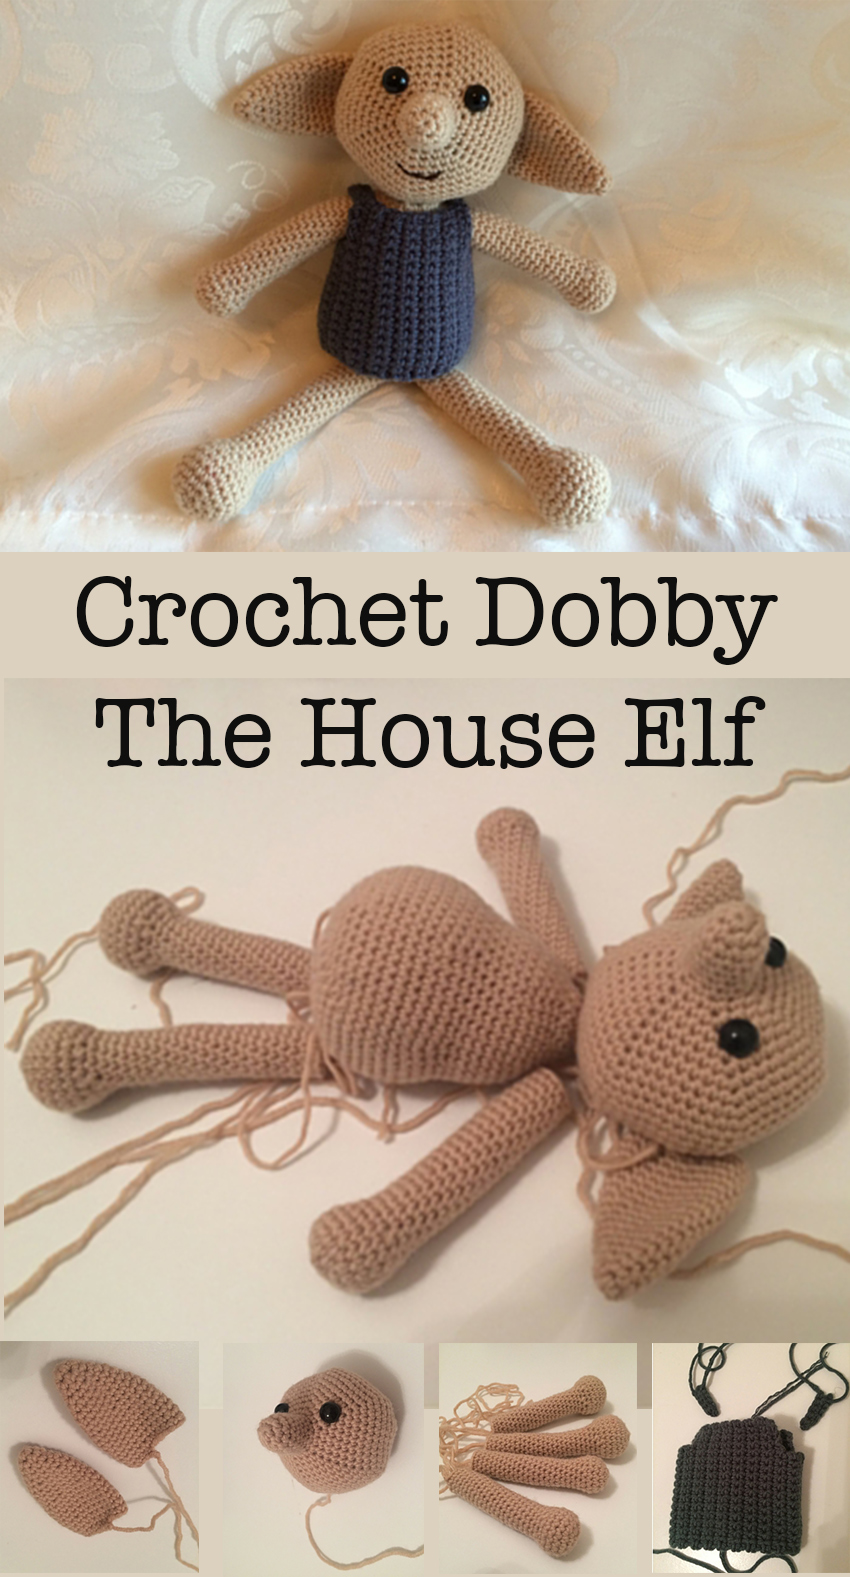 How to Crochet Dobby The House Elf Doll